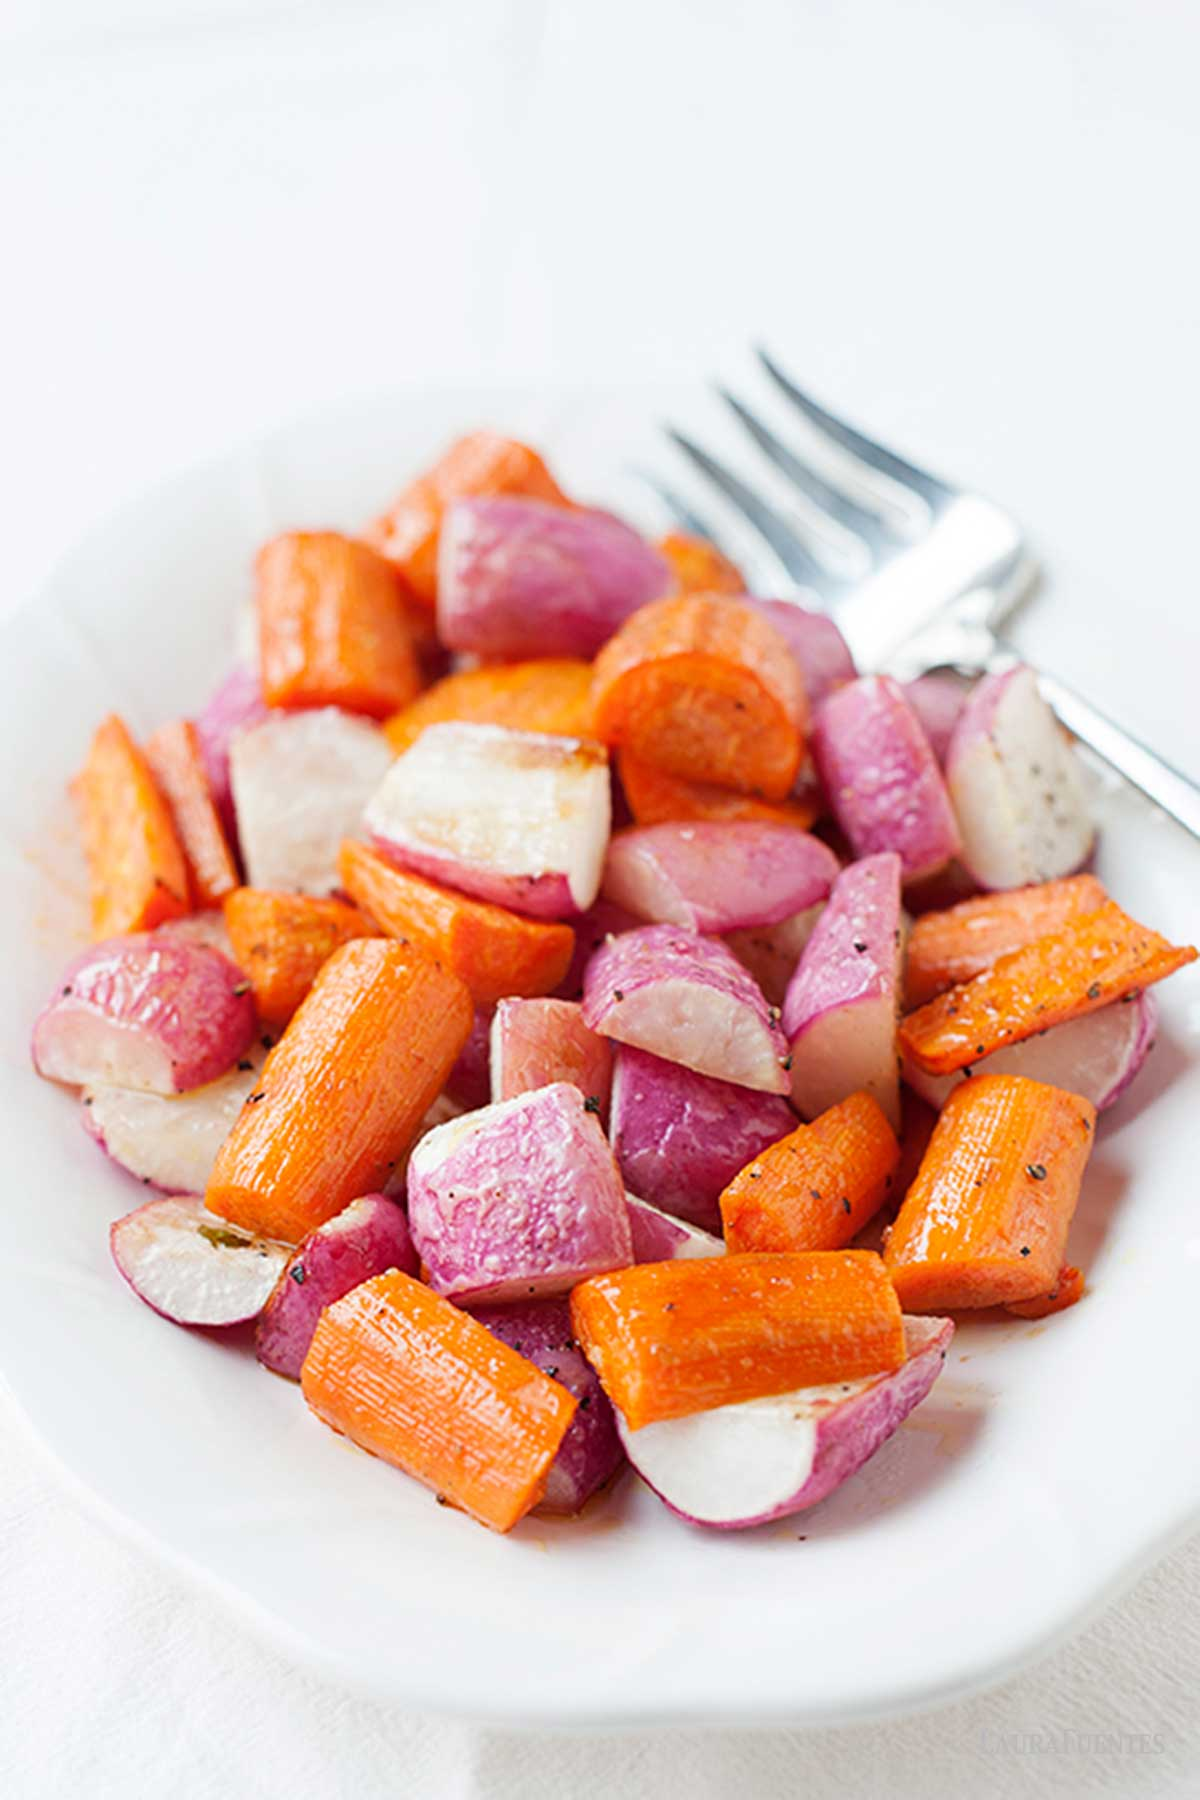 roasted radishes and carrots on a large white plate